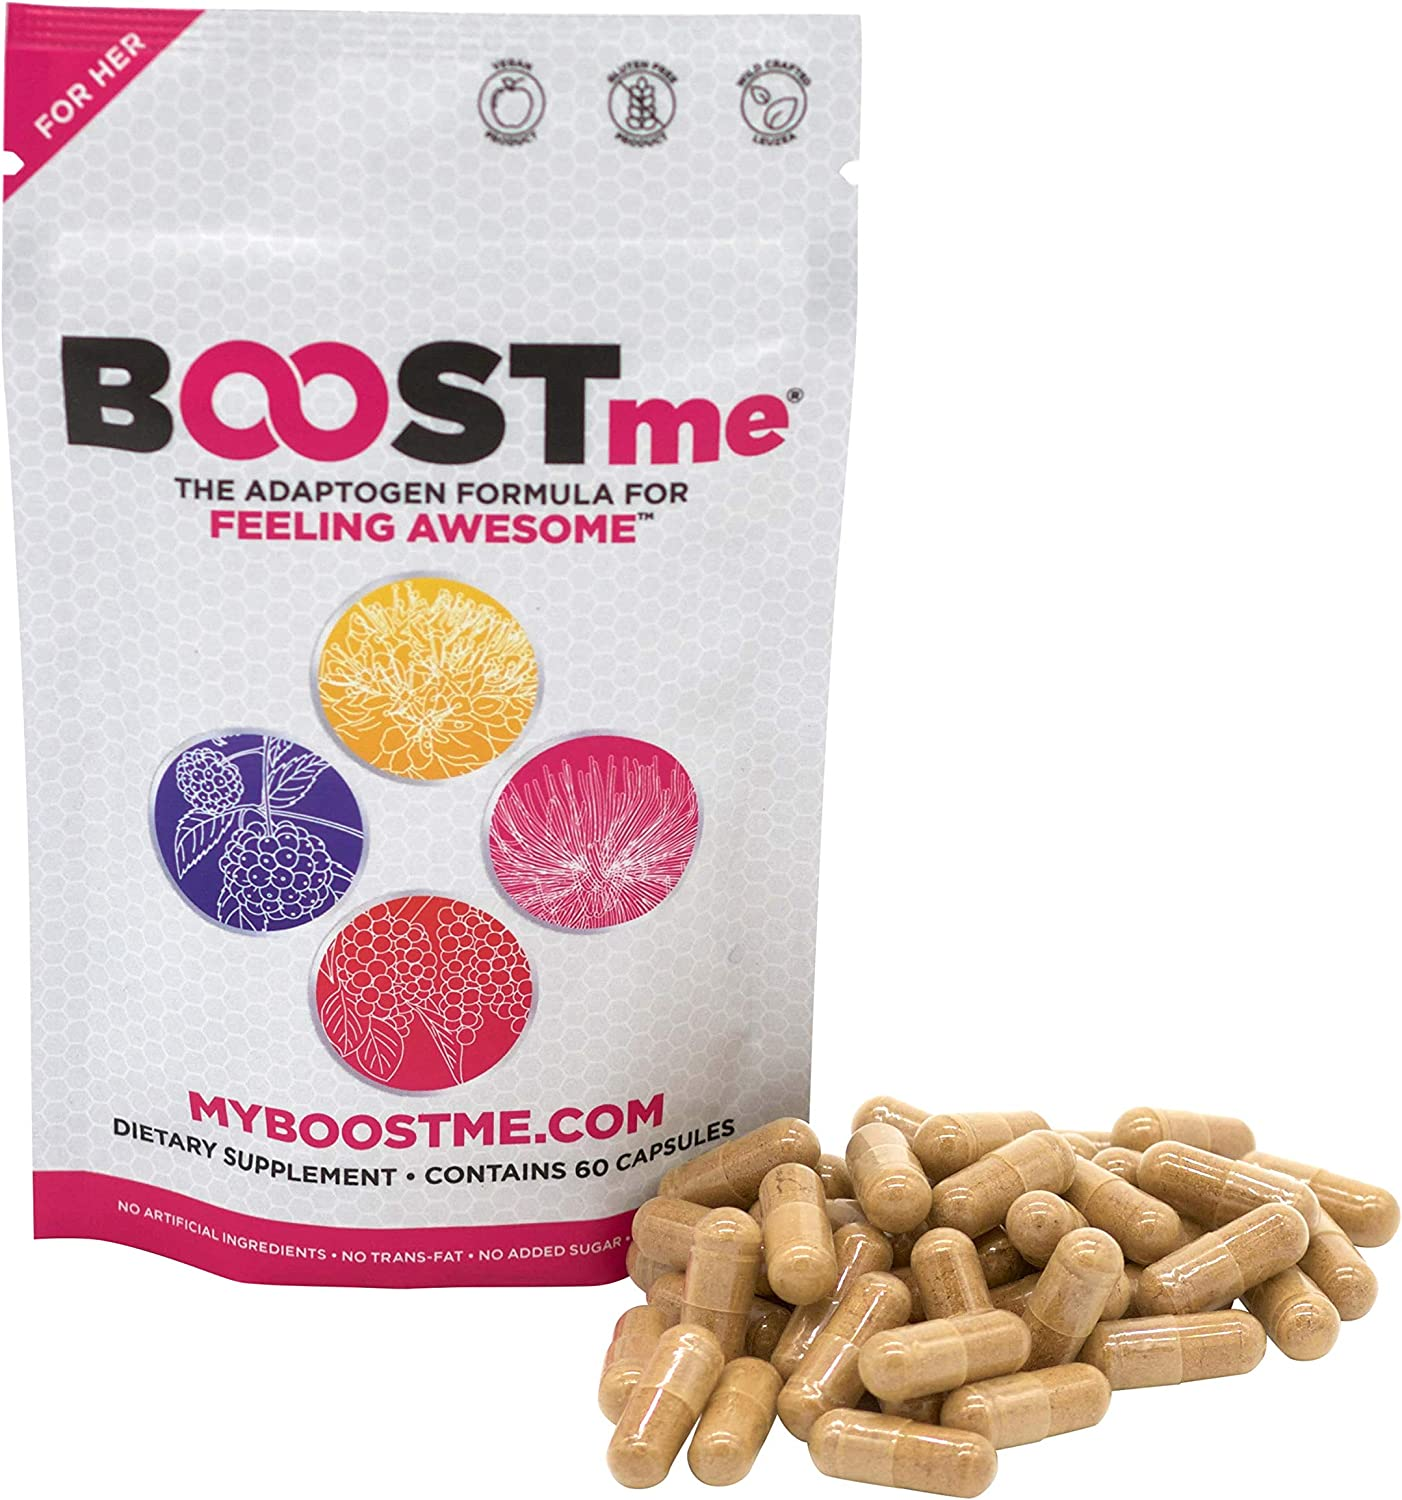 BOOSTme Daily Adaptogen Supplement: Menopause Manager - Stress and Anxiety Relief - Sleep Aid - Hormone Balance for Women - Thyroid and Adrenal Support - 60 Capsules